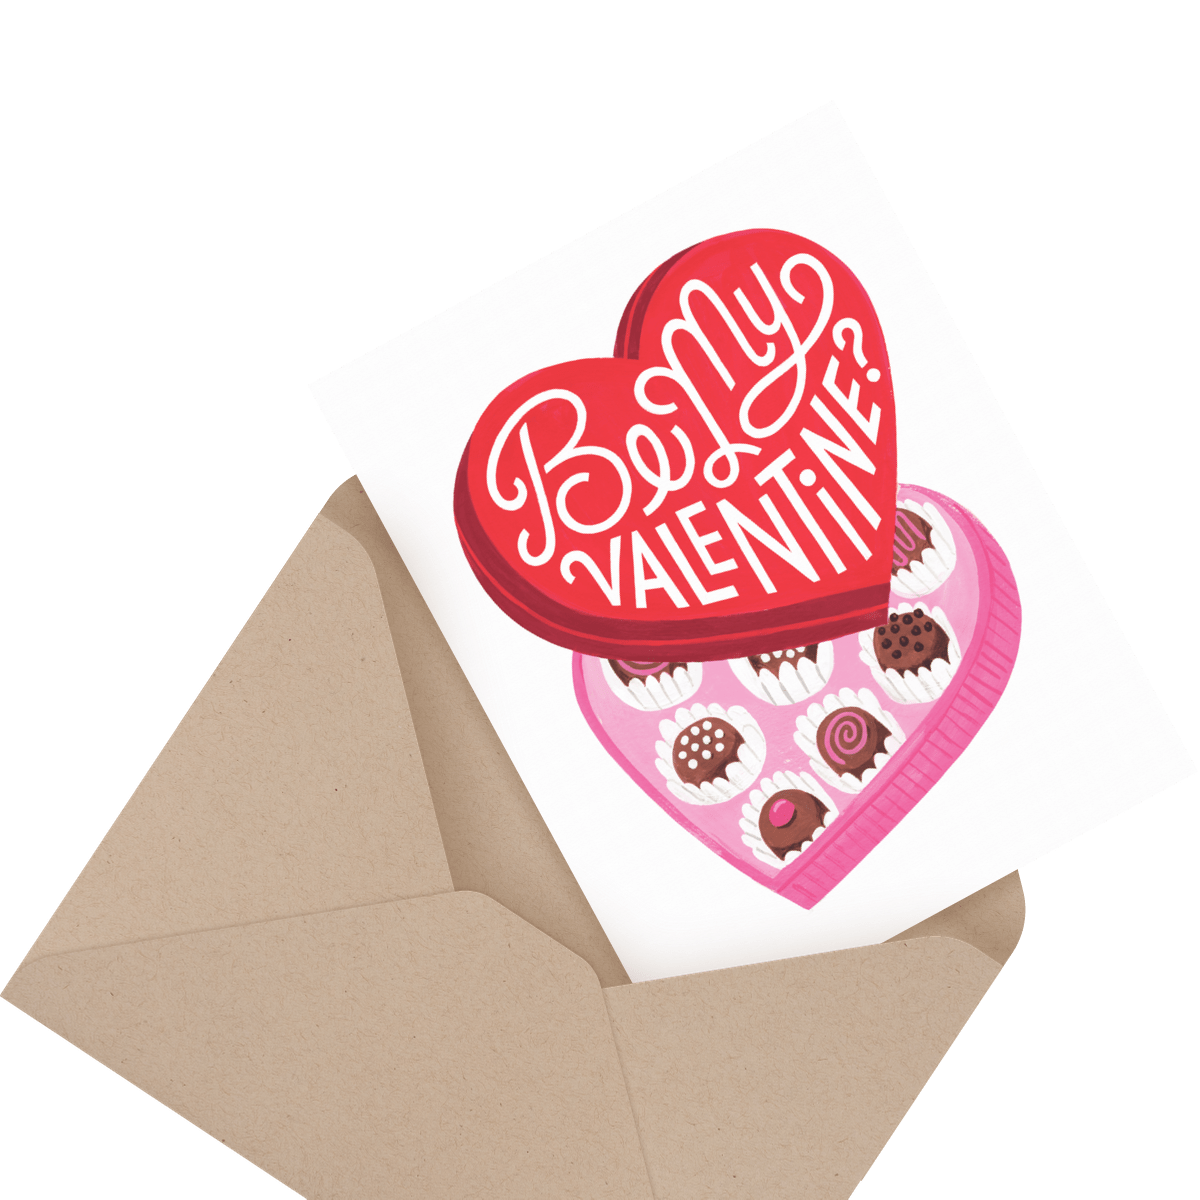 adorable puppy valentine's day card